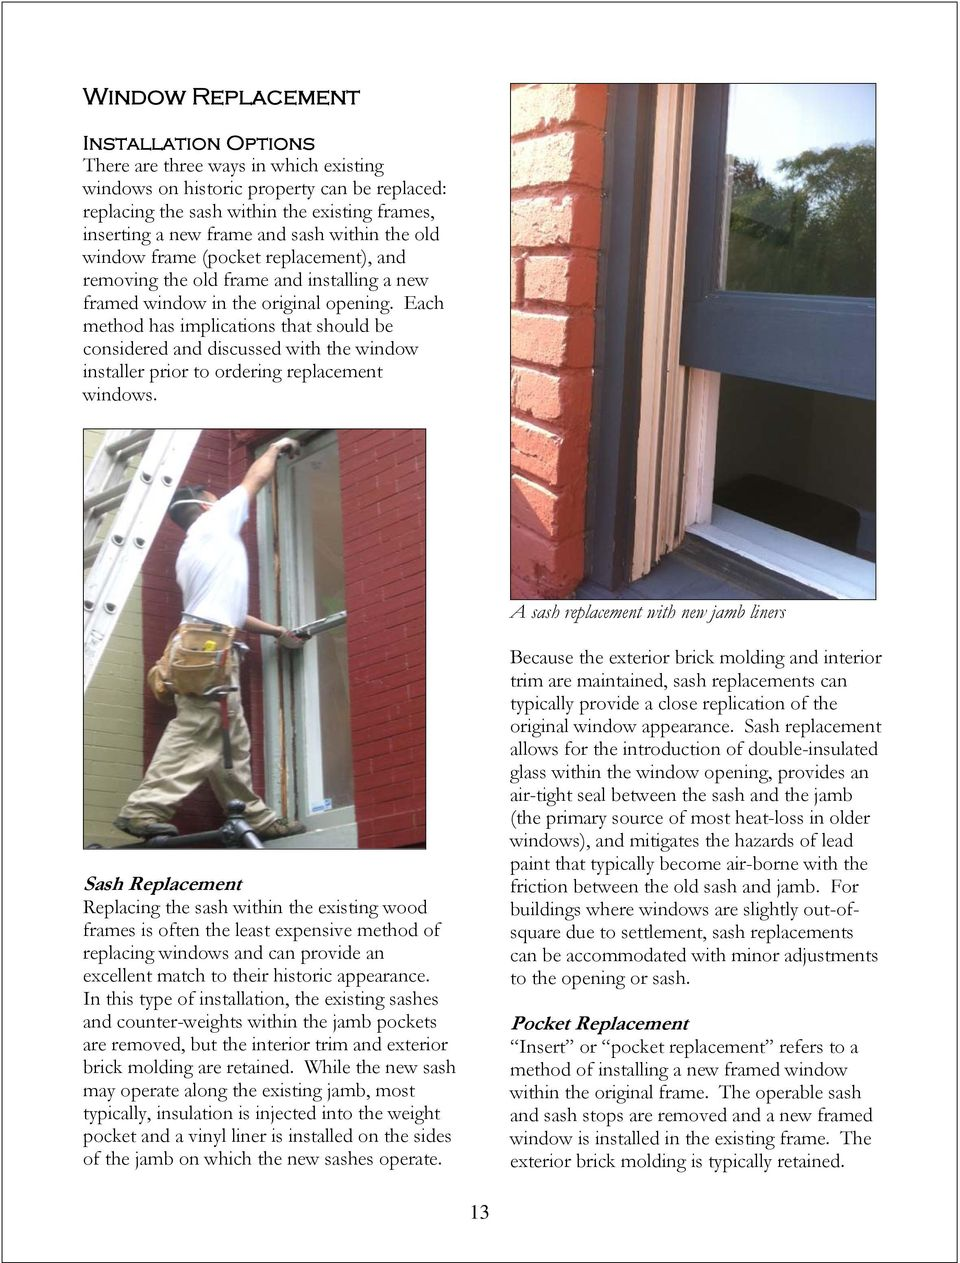 Each method has implications that should be considered and discussed with the window installer prior to ordering replacement windows.